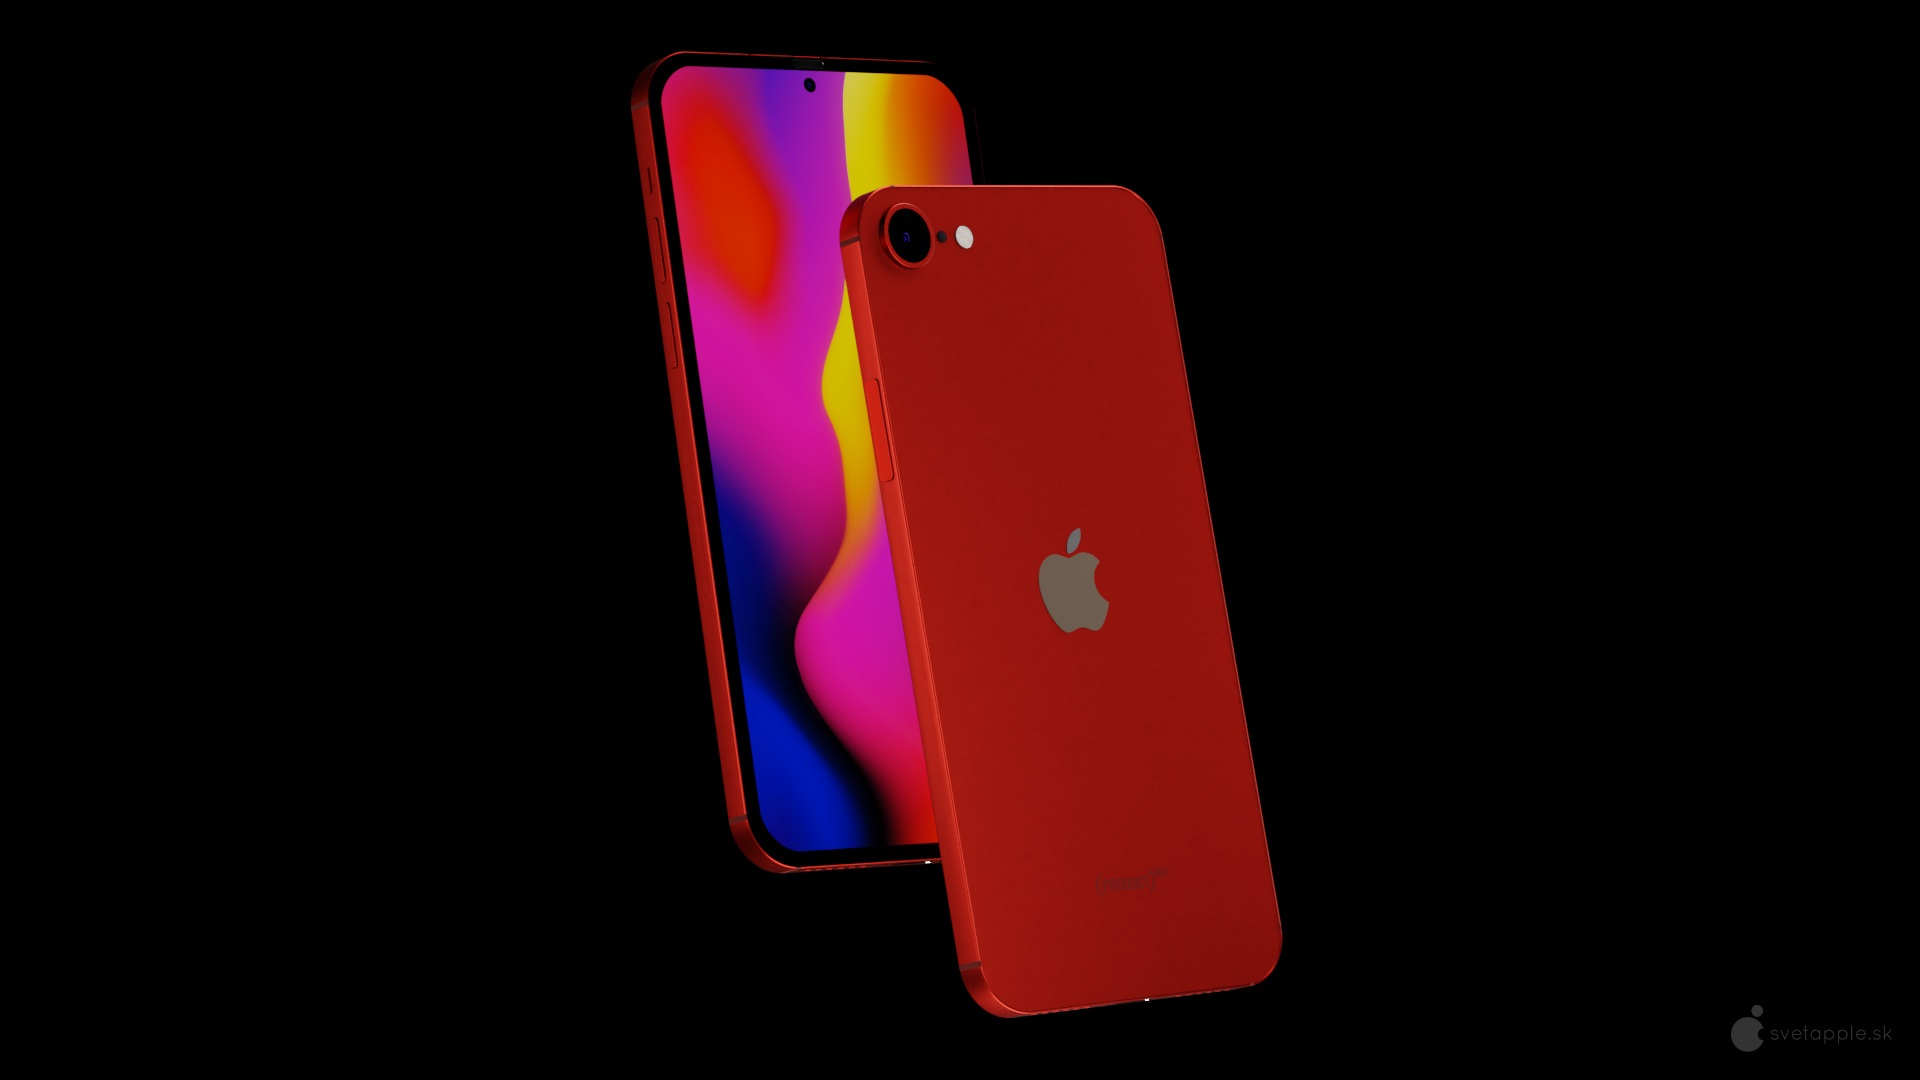 2021 iPhone SE Features an iPhone 12-Like Design With Flat ...